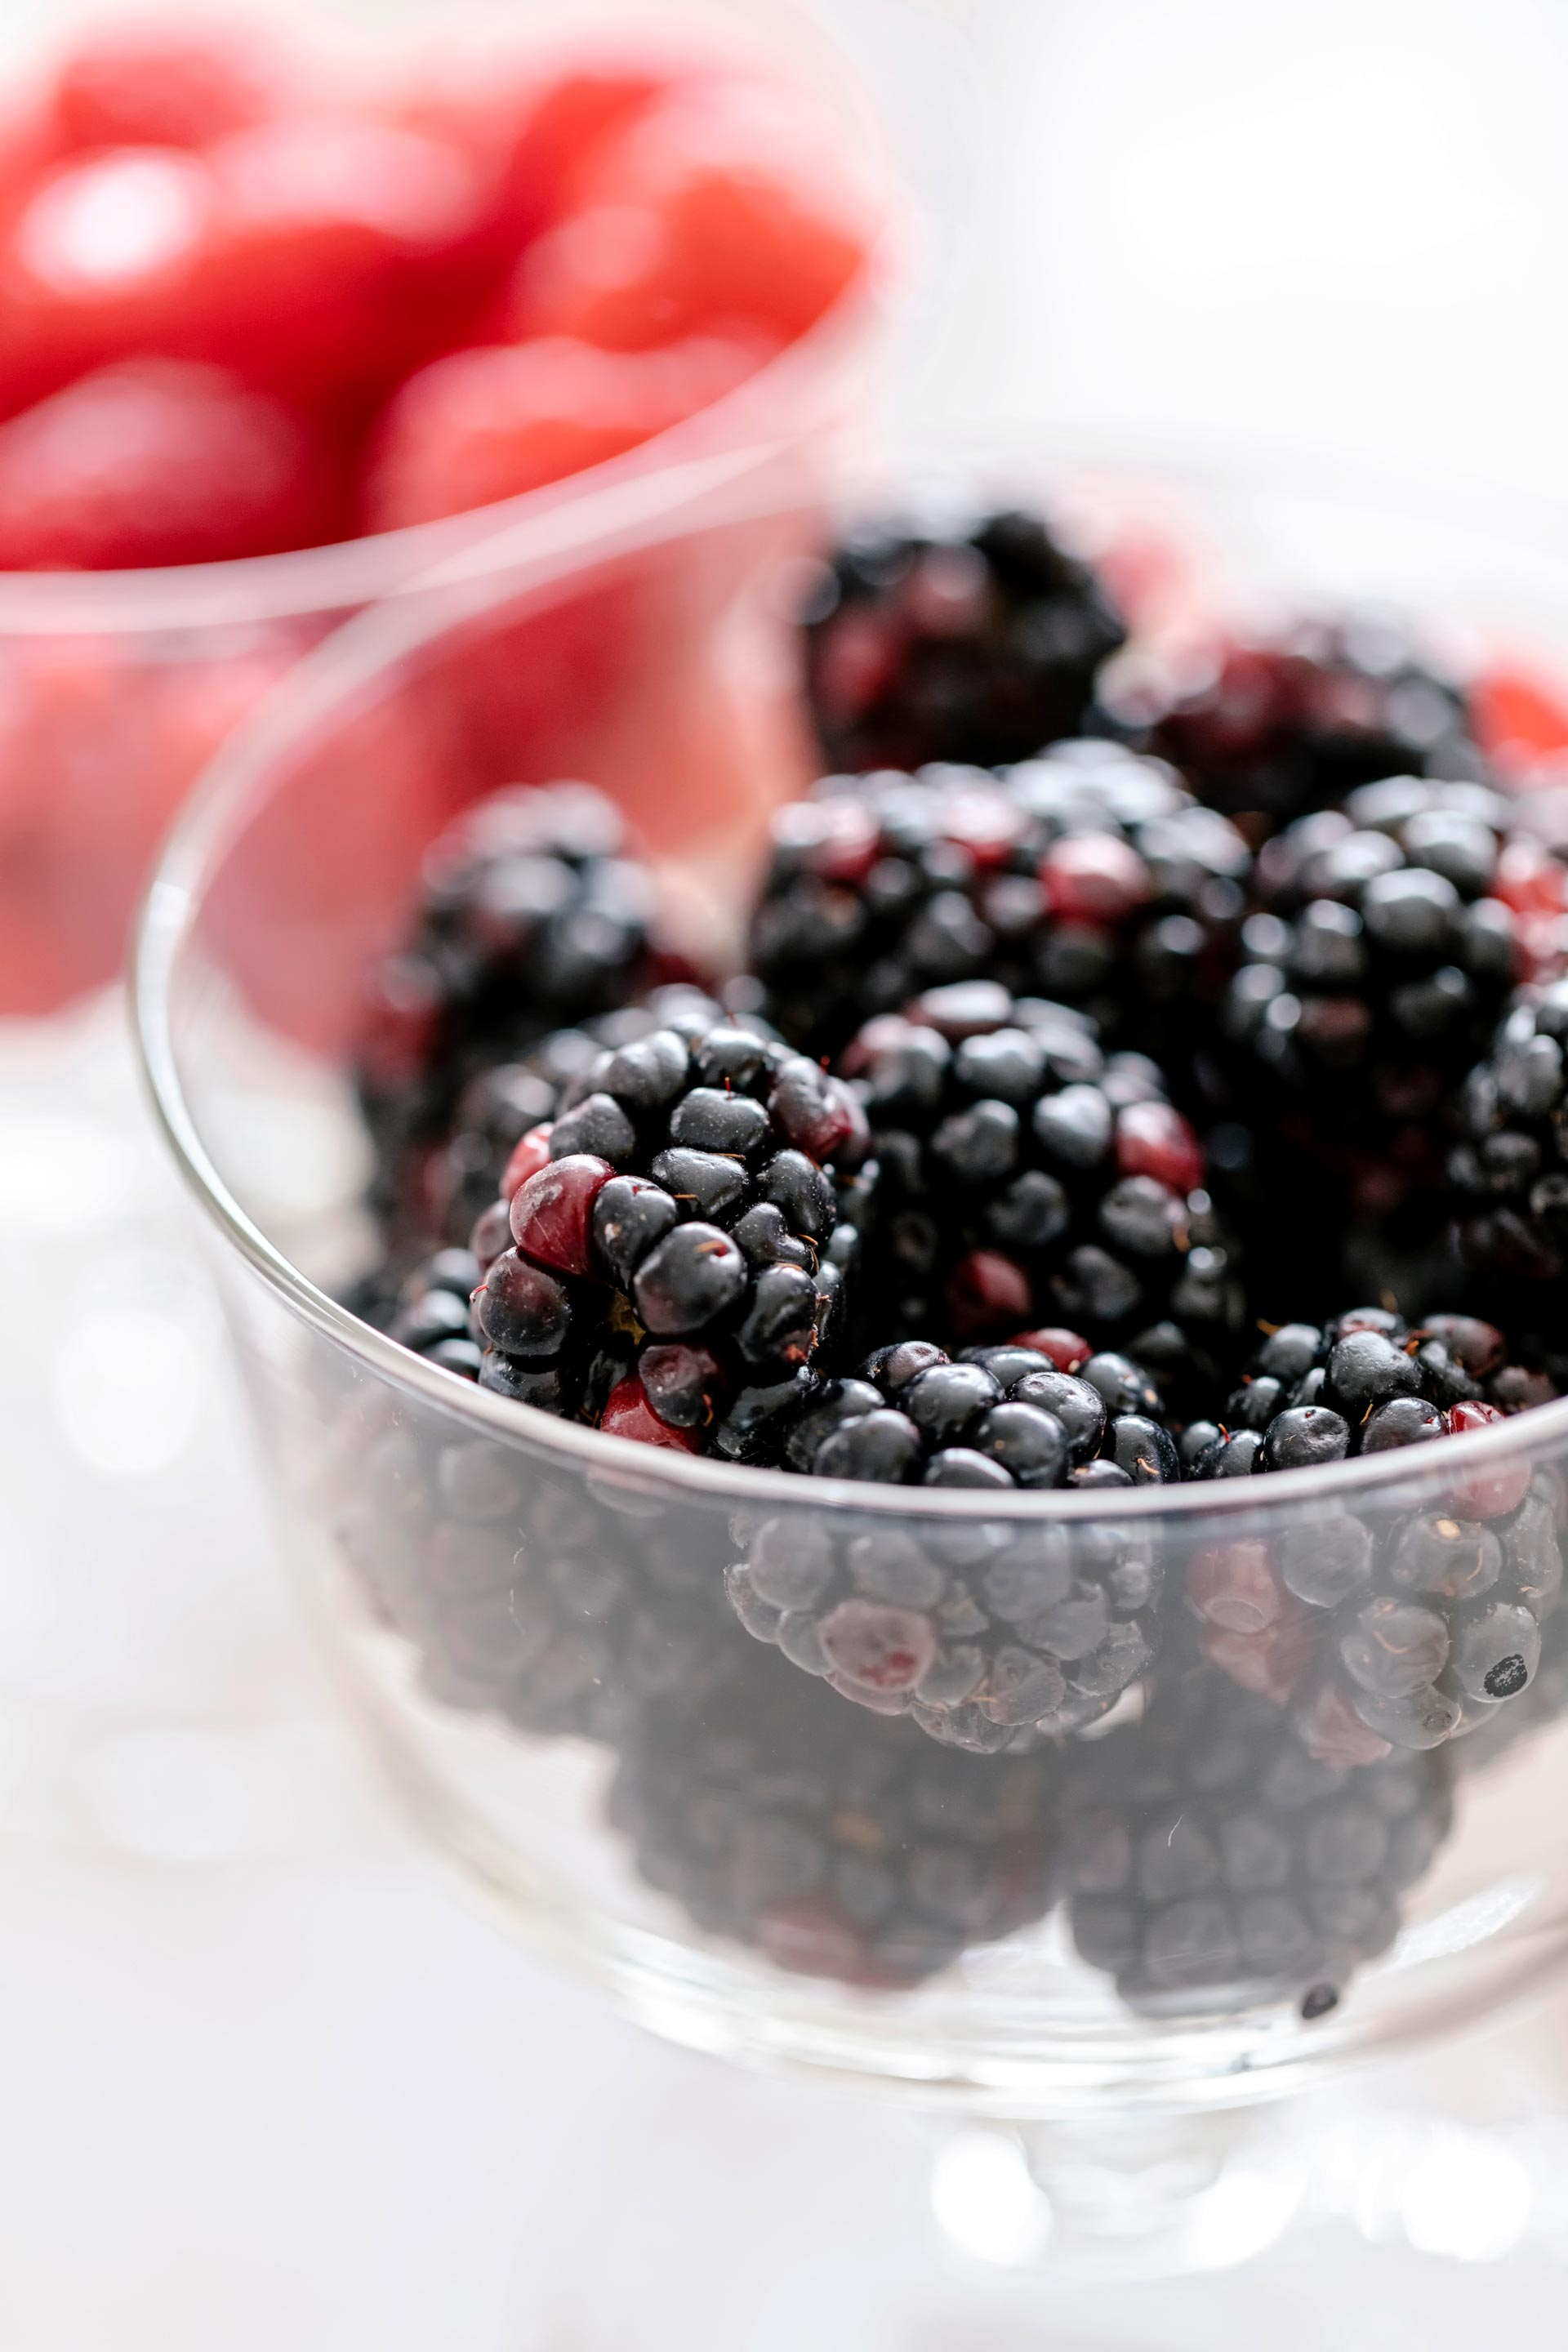 Styled Blackberries